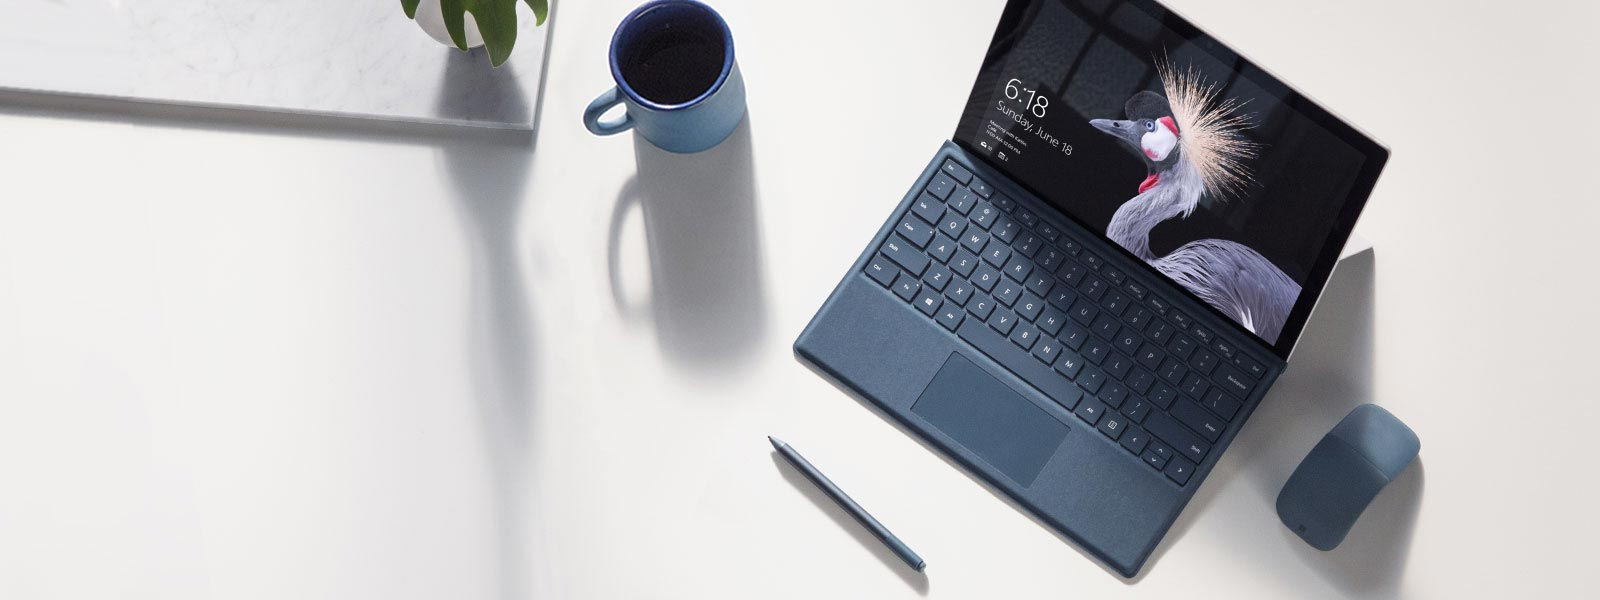 A Surface Pro on a desk